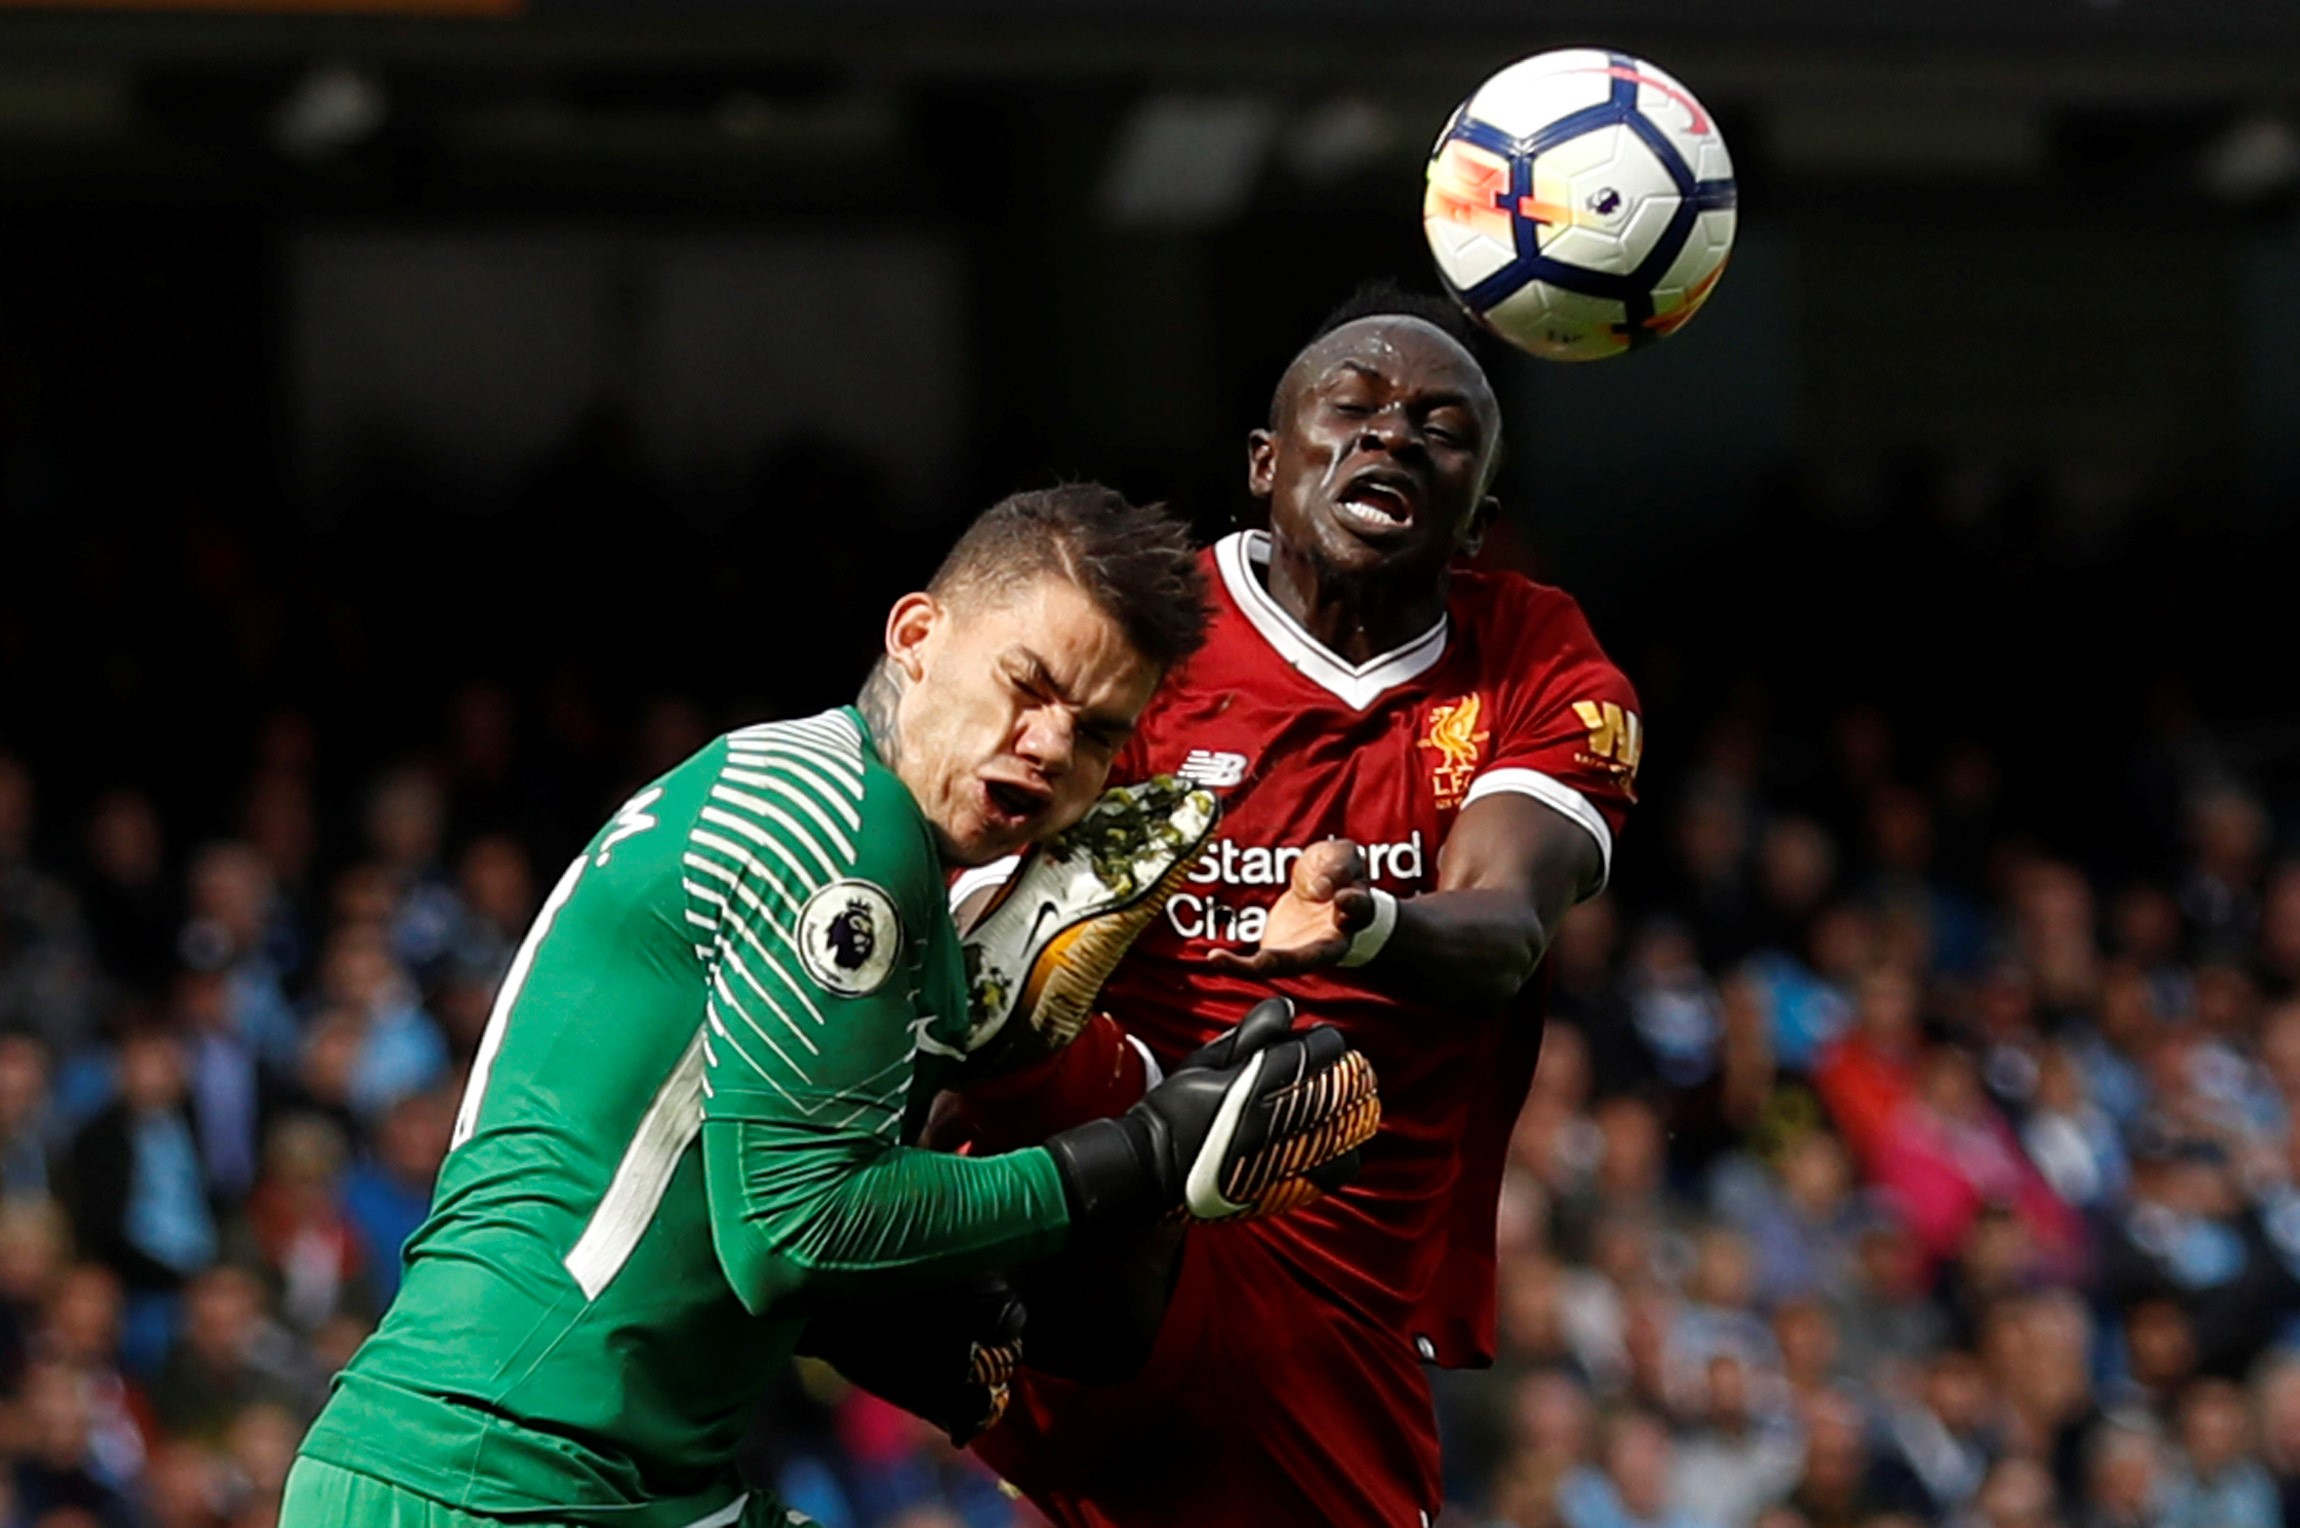 Manchester City's Ederson Moraes is fouled by Liverpool's Sadio Mane